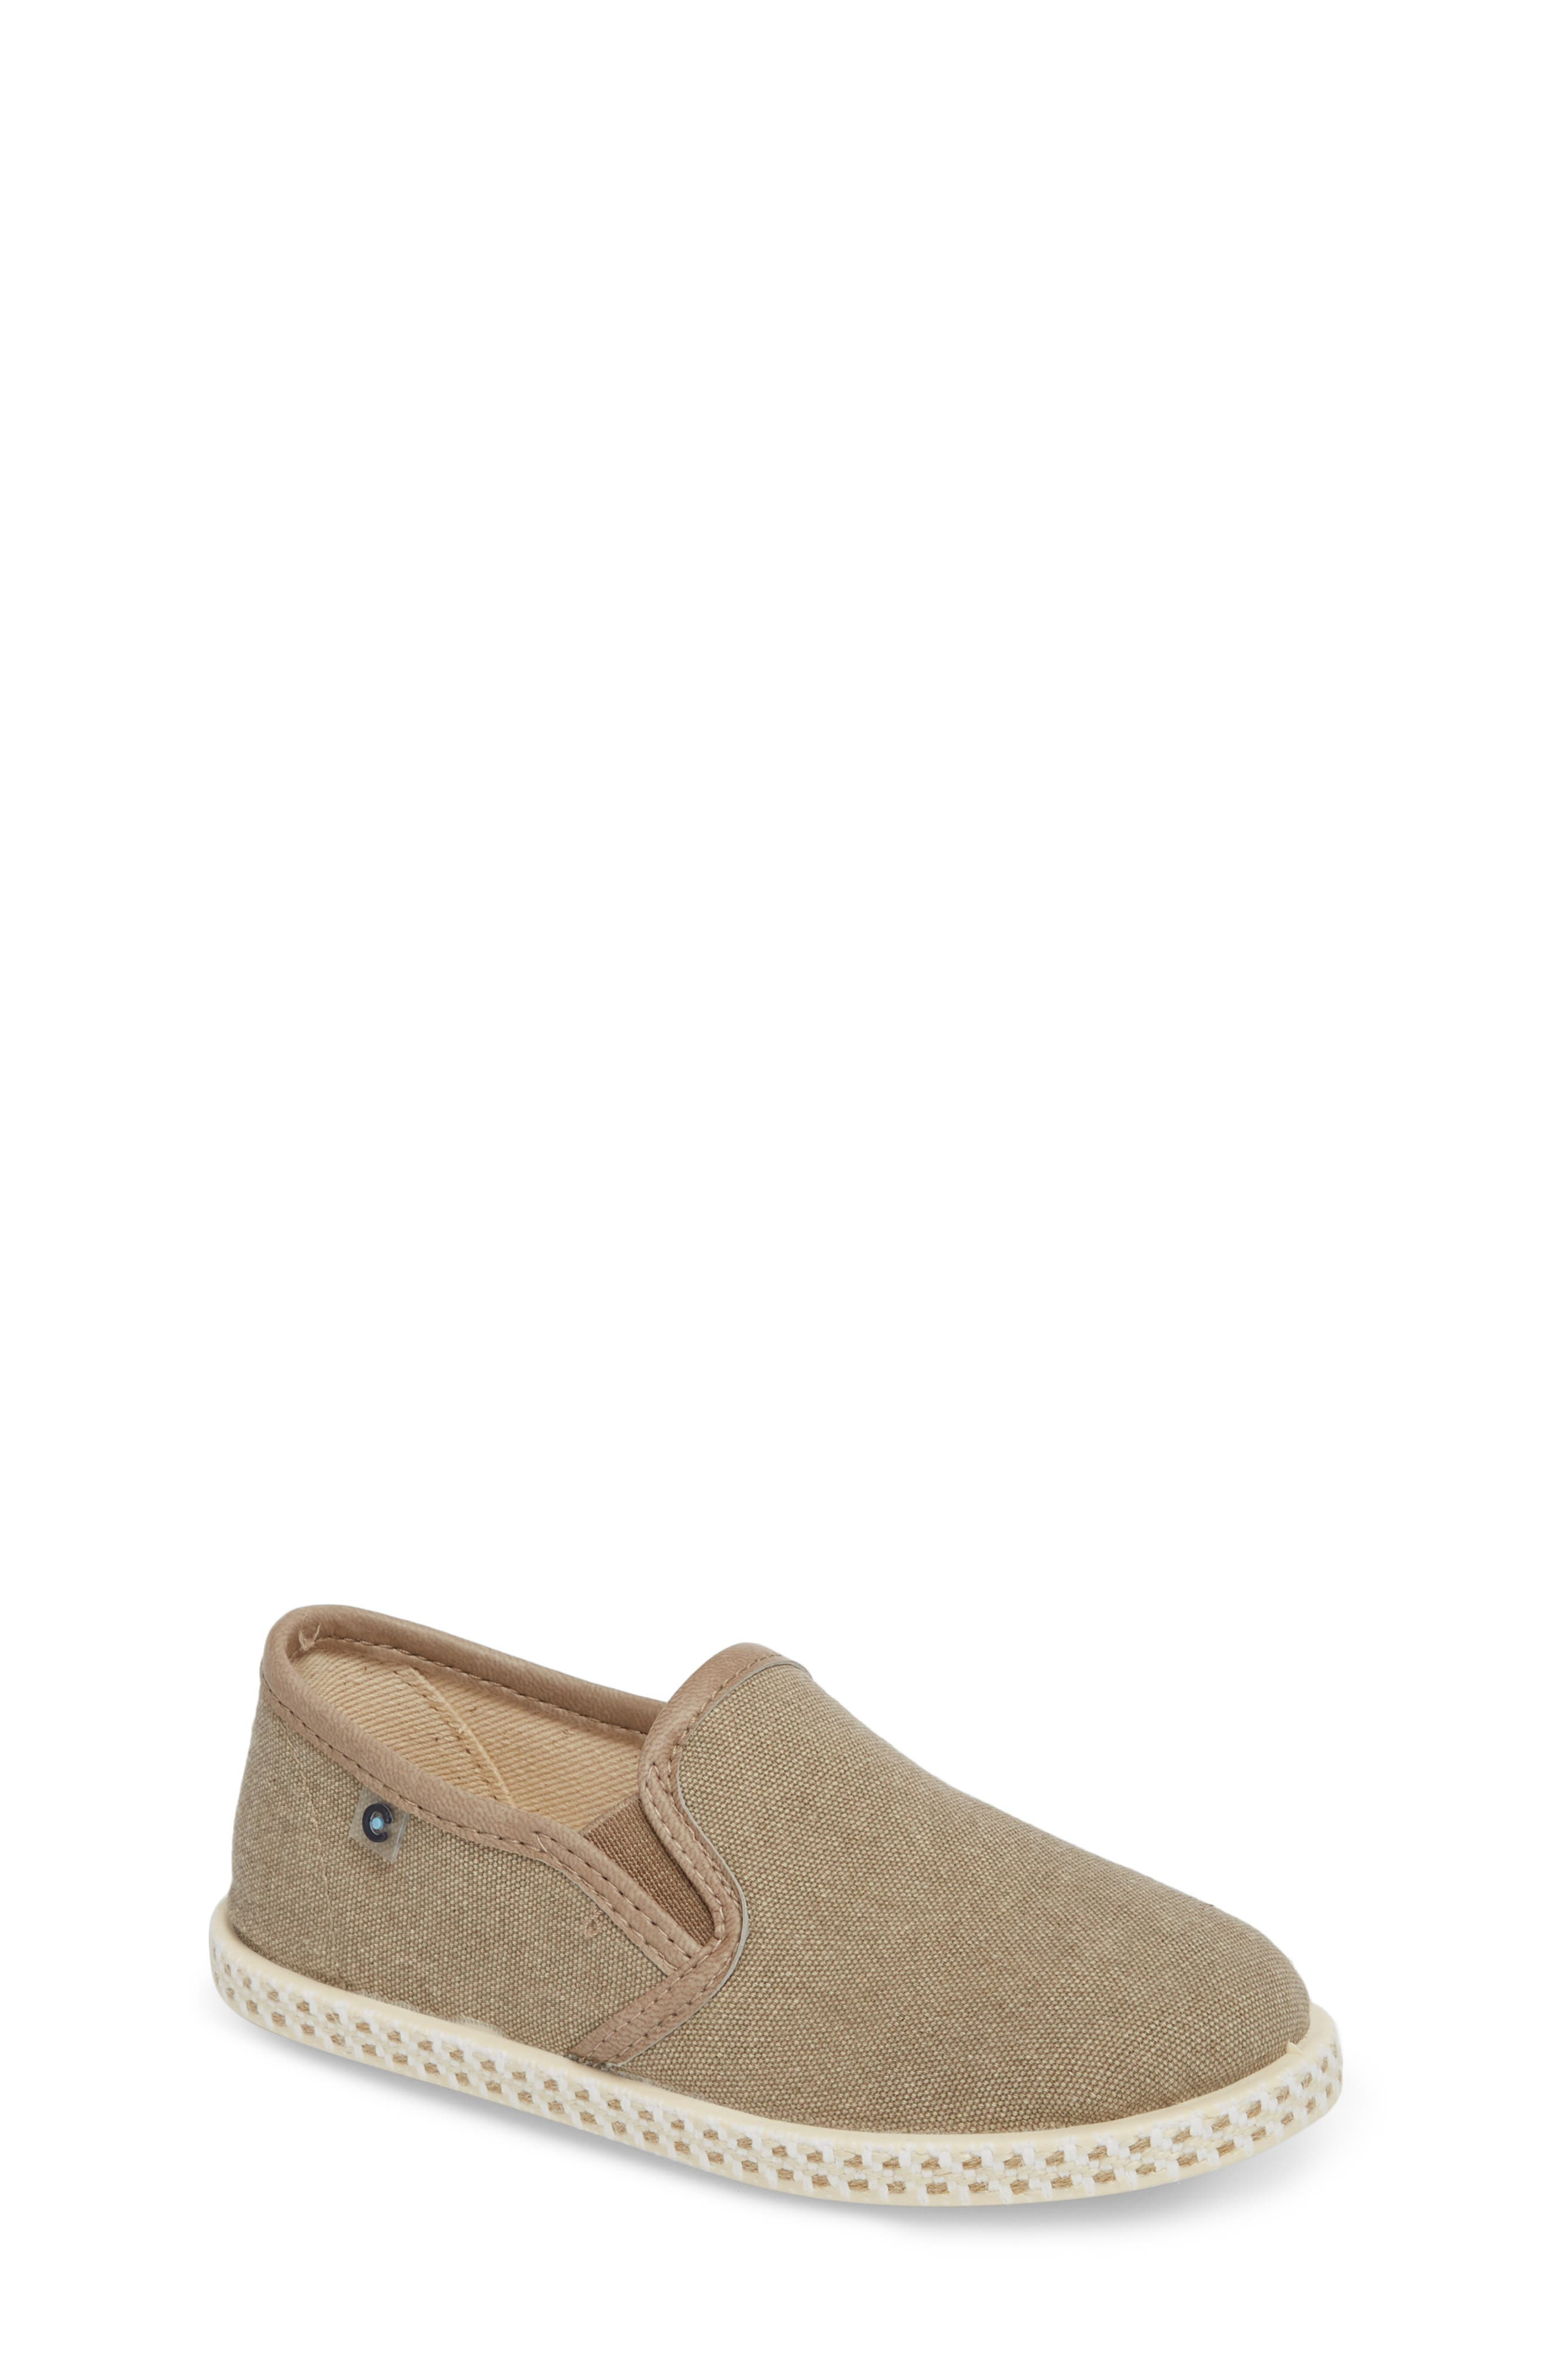 Lona Slip-On Sneaker,                         Main,                         color, TAUPE